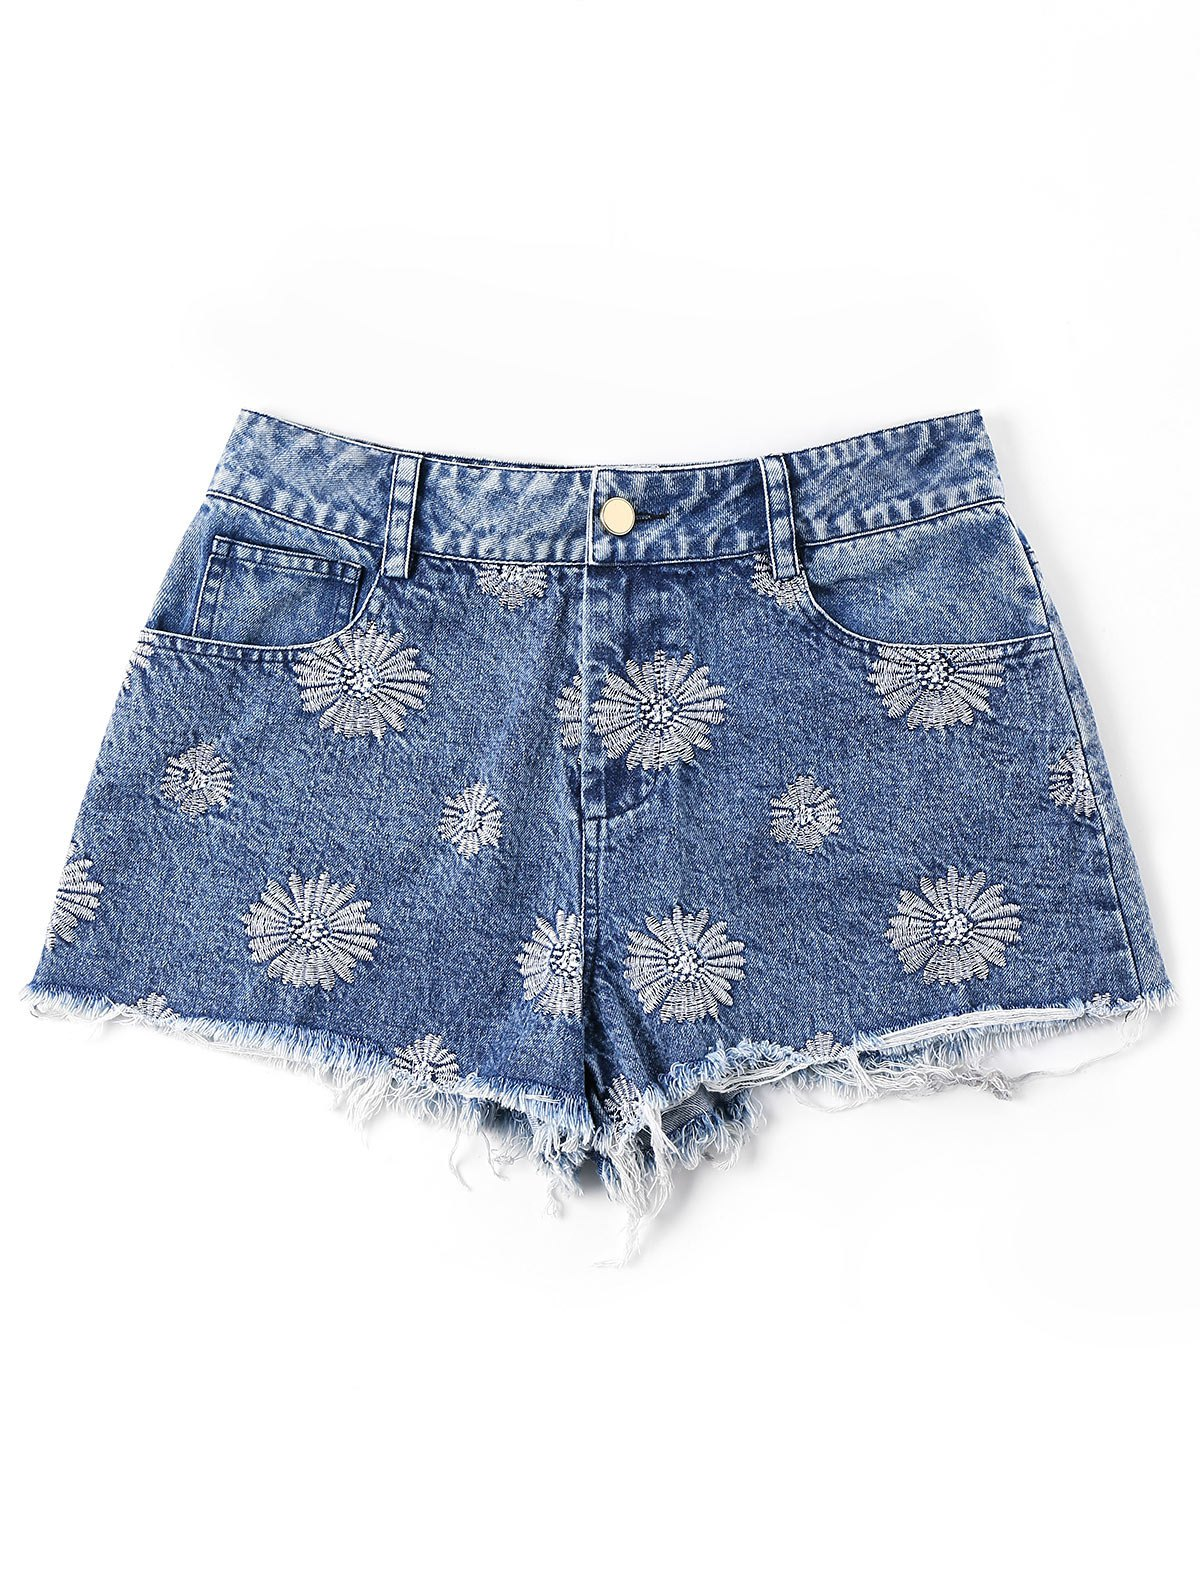 Unique Embroidery Frayed Hem Jean Shorts